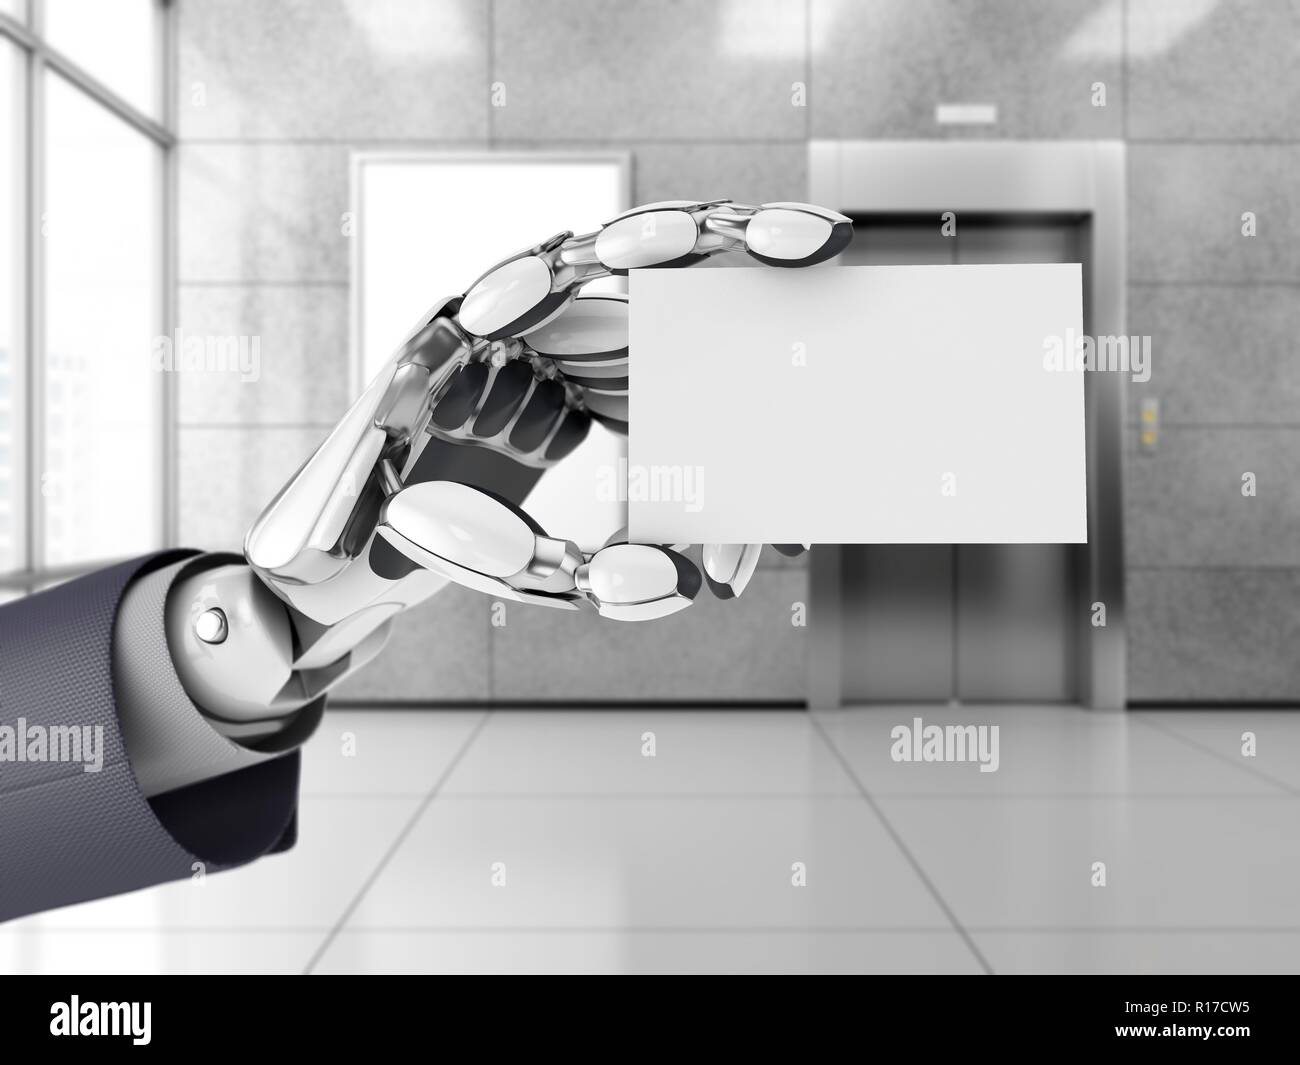 Technology Management Image: Robotics Hand Hold Blank Business Card In A Office Space